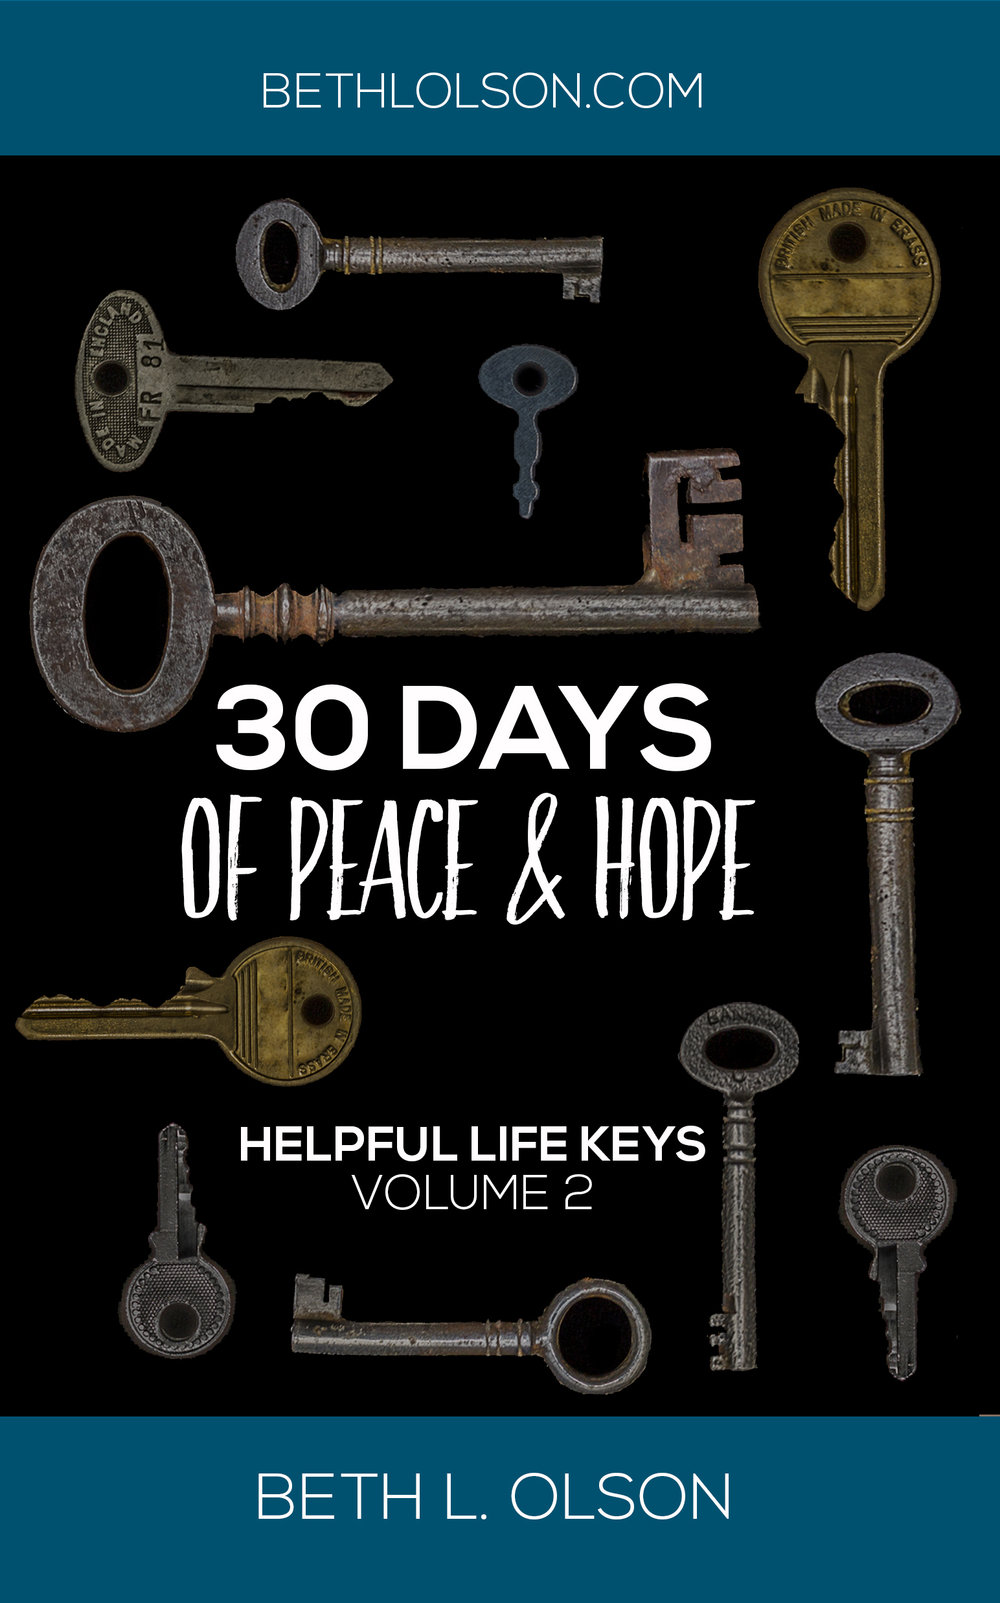 Can you imagine how your life would look if you walked in peace and hope every day? Jesus gives us peace and then commands us to not let our hearts be troubled. This is both a gift and a responsibility. Let's take the next 30 days to work together on cultivating a peace that leads to lasting hope.